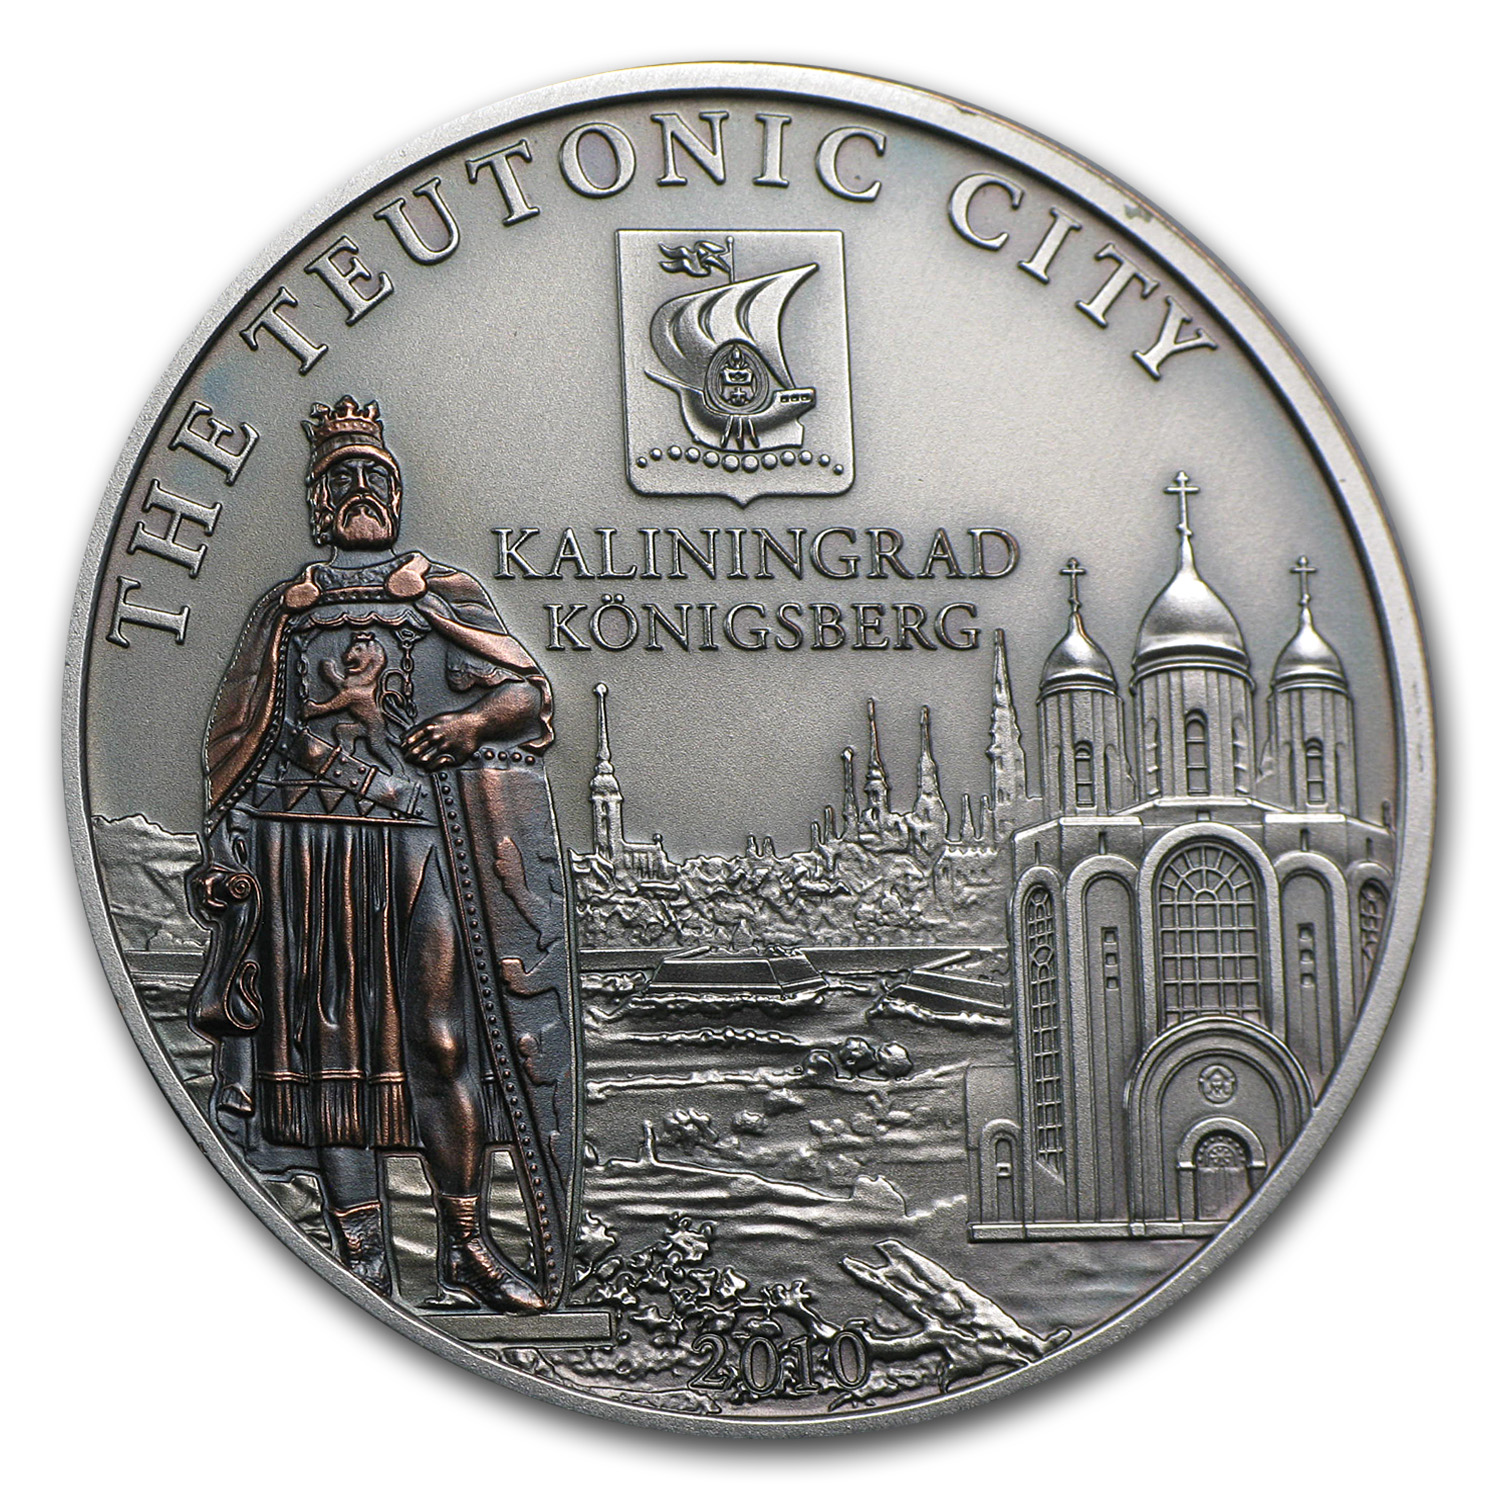 Cook Islands Silver 2010 $5 Hanseatic League - Kaliningrad